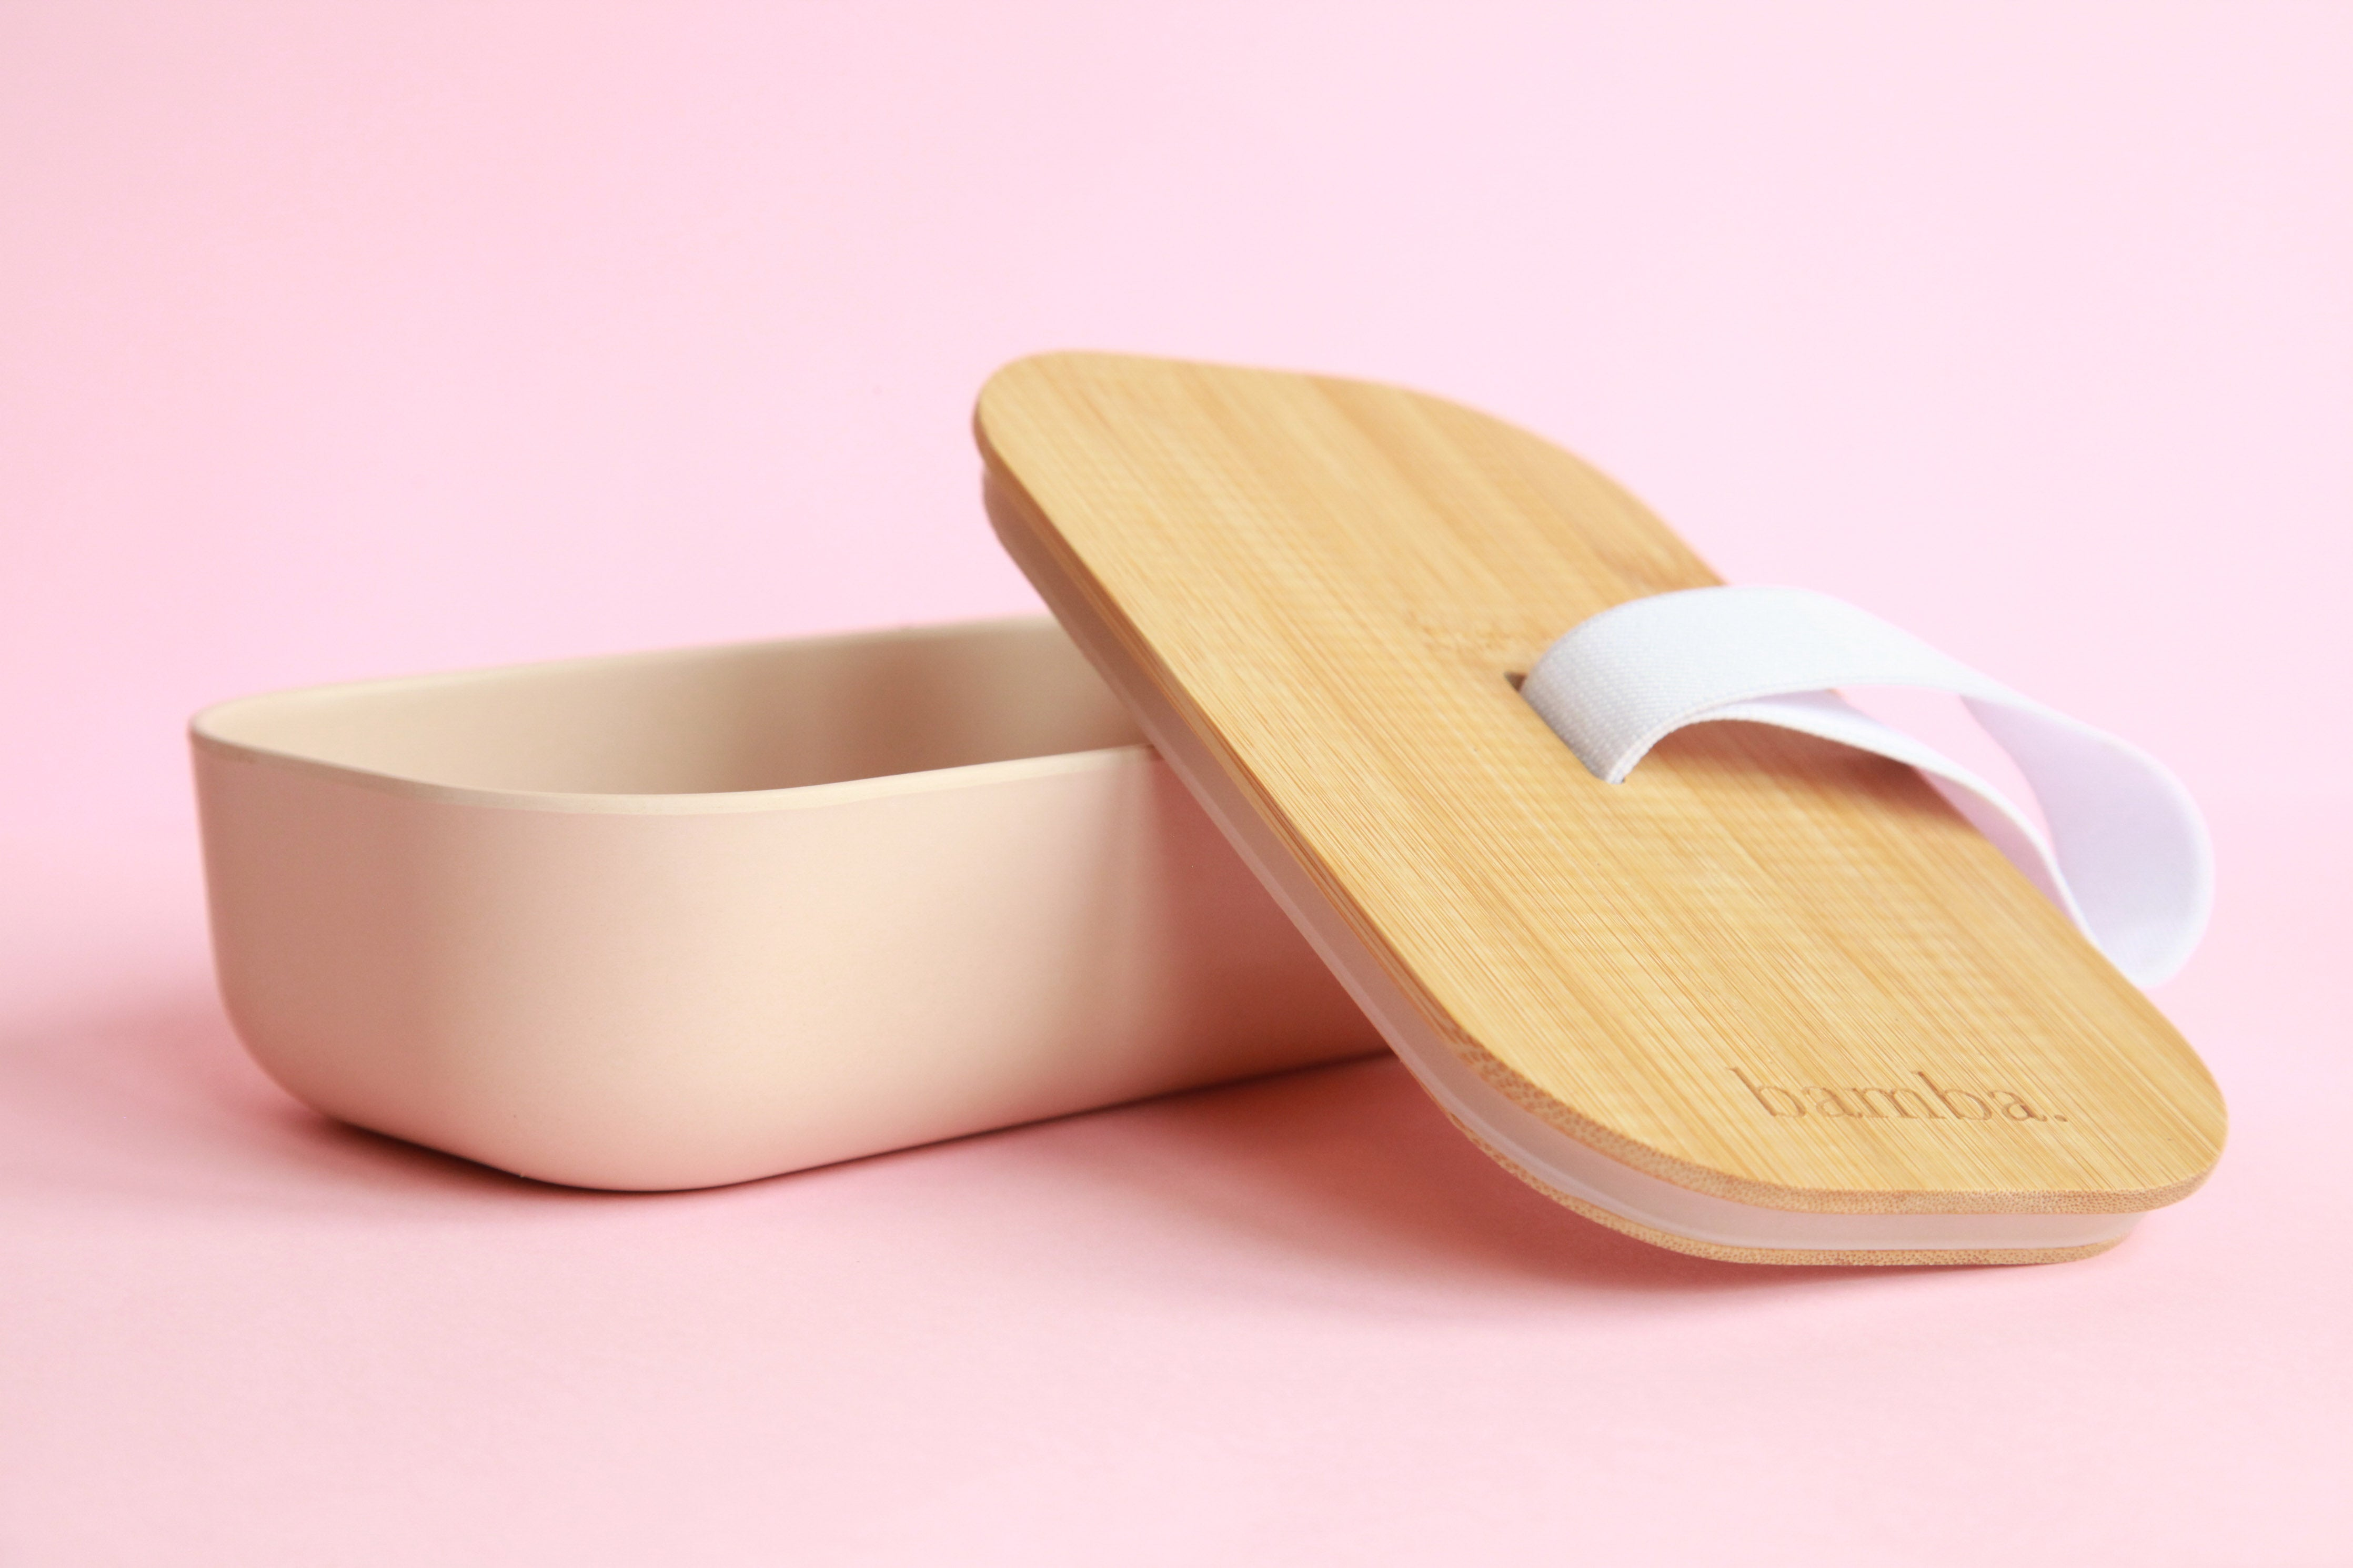 Bamboo Lunchbox - Powder Pink